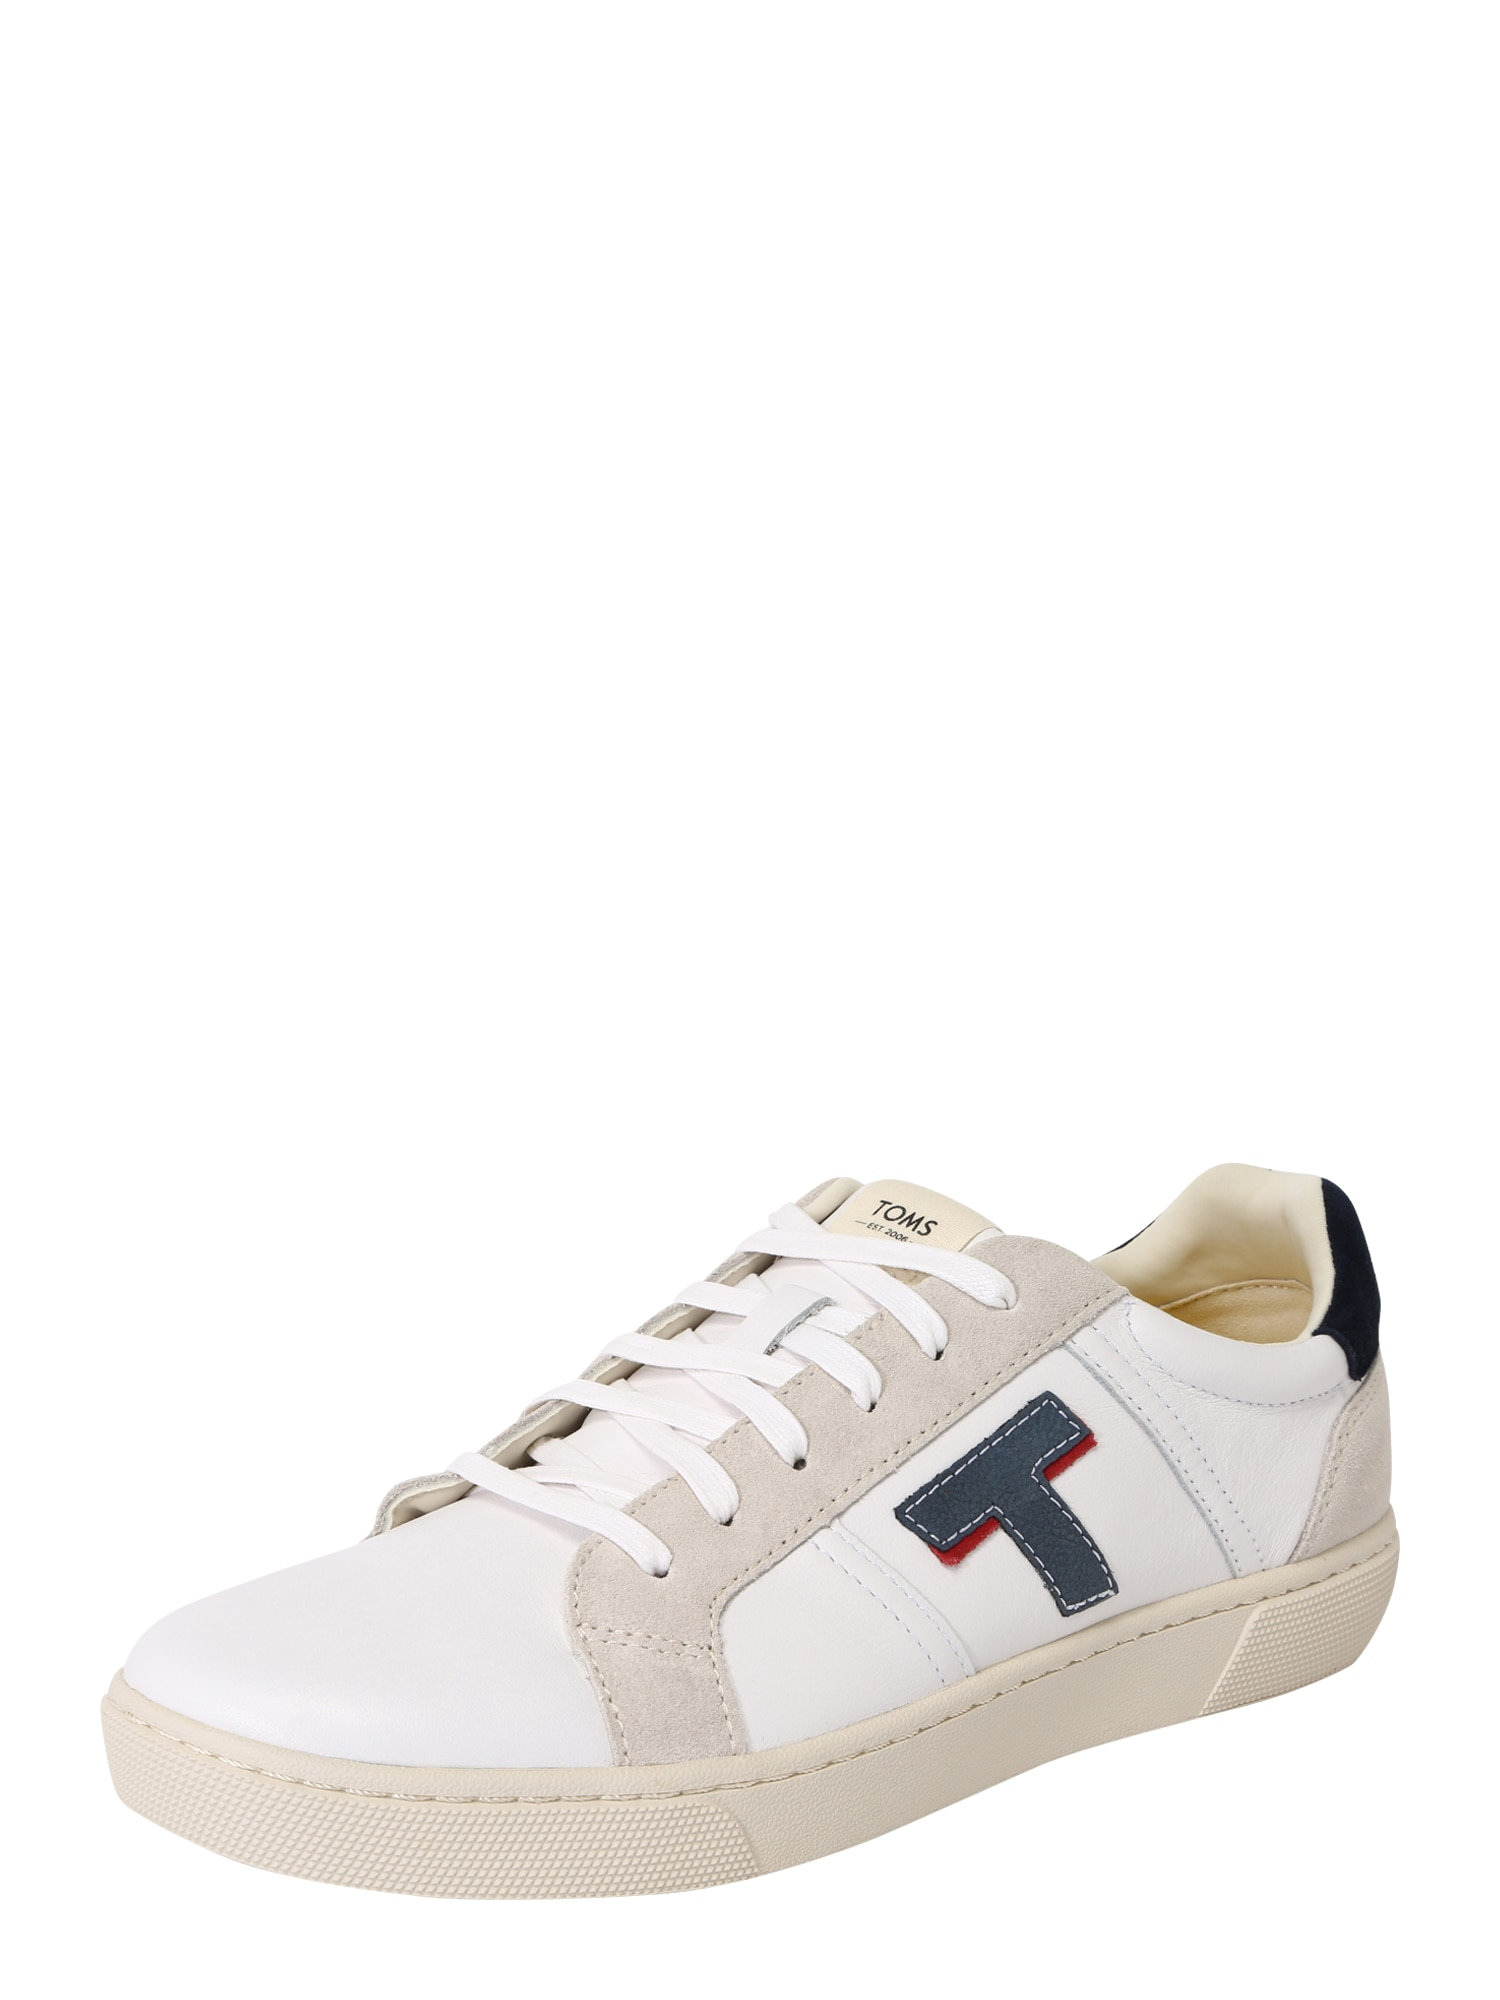 Tenisky LEANDRO offwhite TOMS